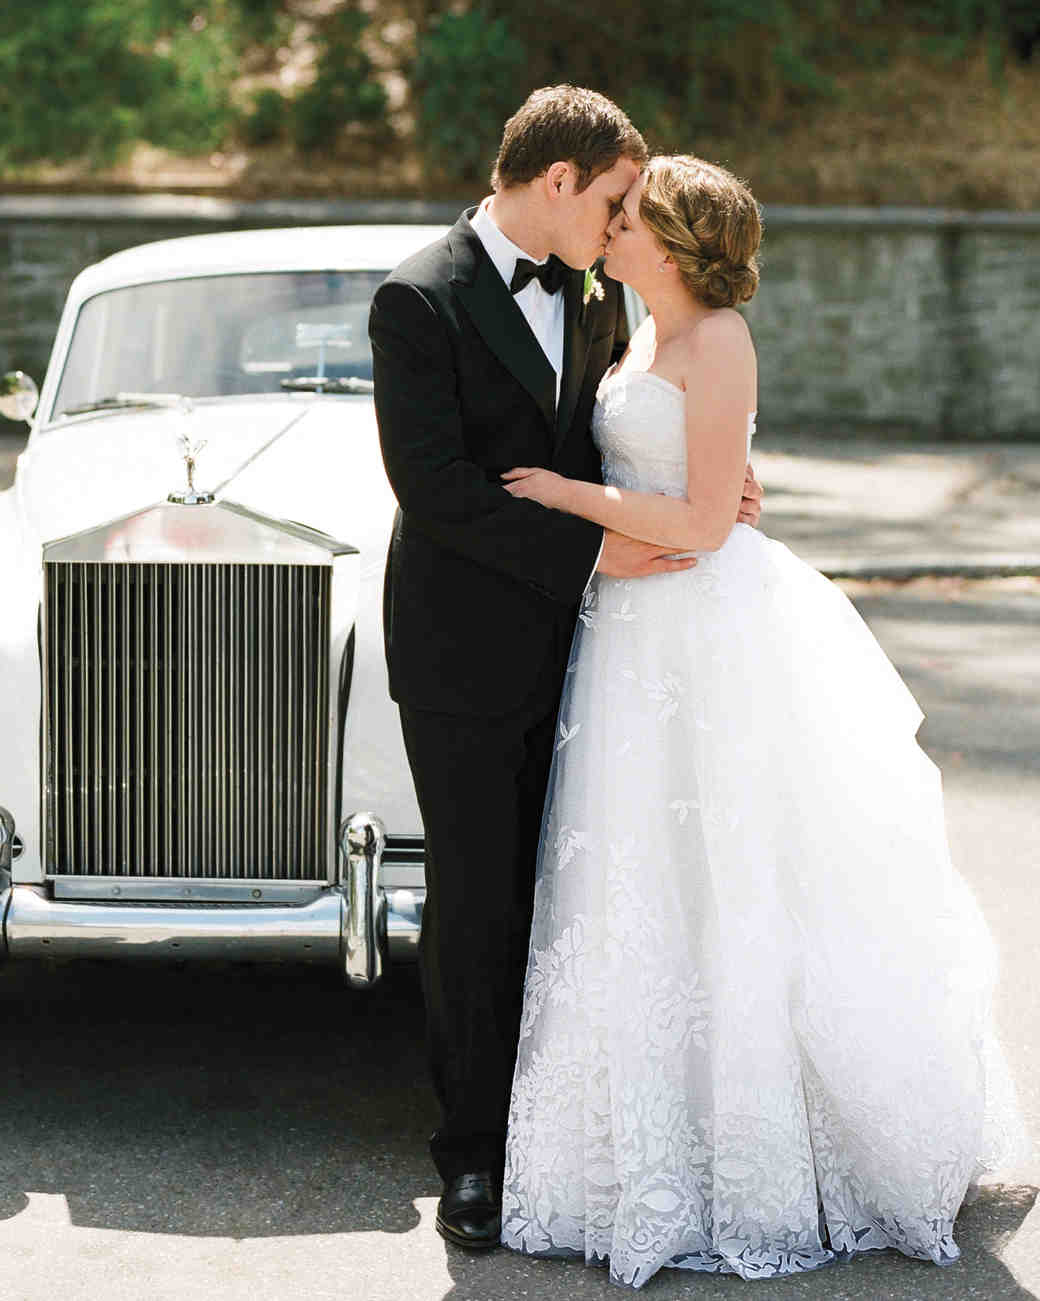 casual dress for groom late afternoon wedding,Wedding Attire, Afternoon Wedding Dresses,Afternoon Wedding Dresses, Daytime Wedding Dresses,Proper Dress for a Wedding,Daytime Wedding Dresses,Classic Dresses for Men,Proper Dress for Evening Wedding,Bride Dress Groom Tux,